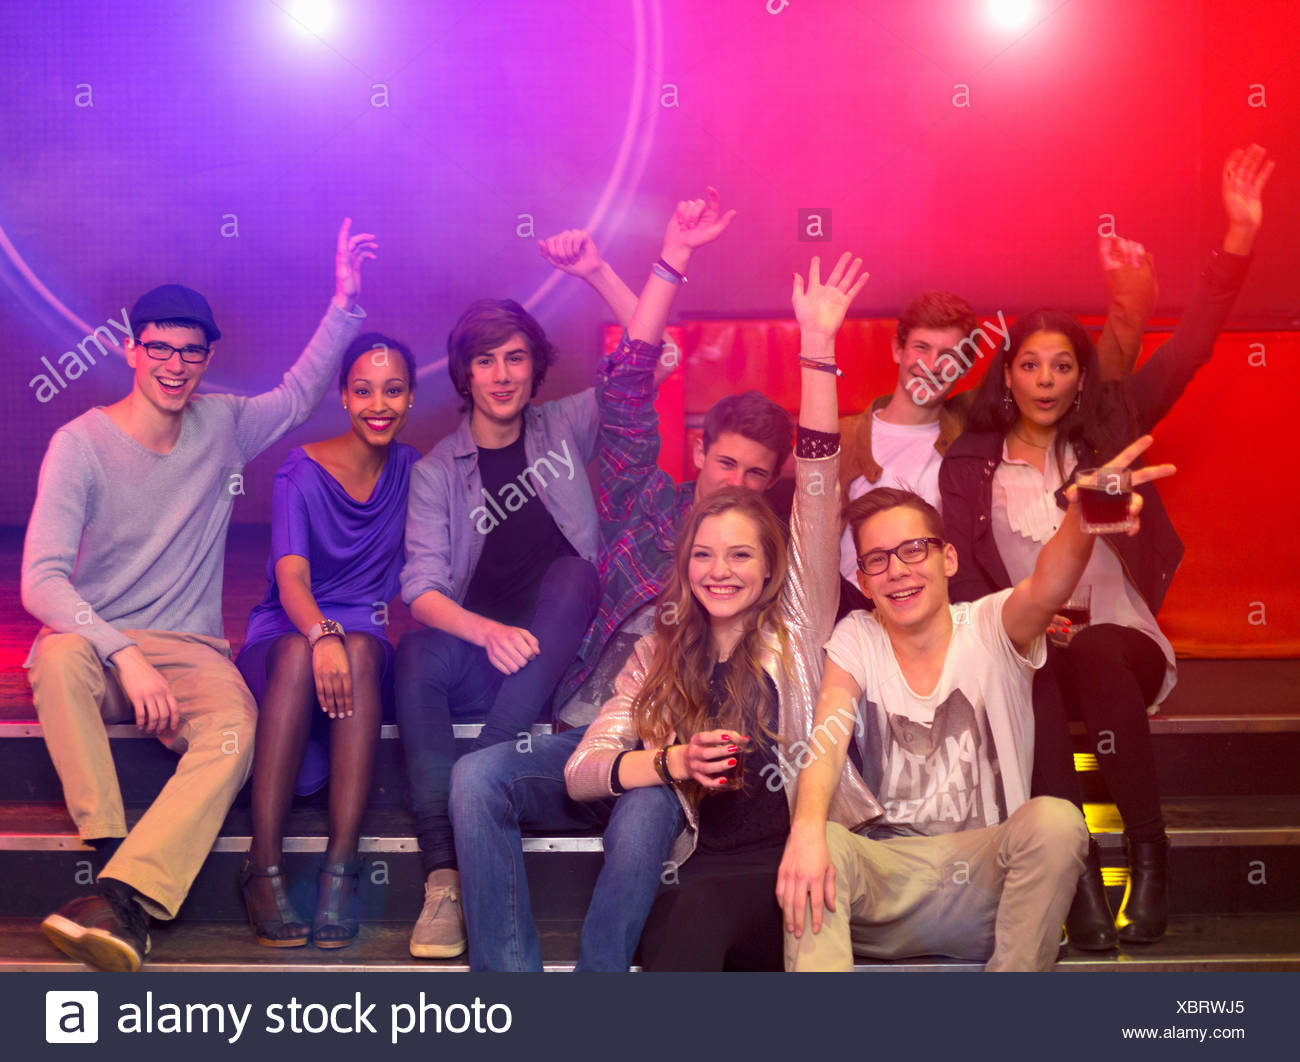 Group of teenagers and young adults at party holding drinks and raising arms - Stock Image